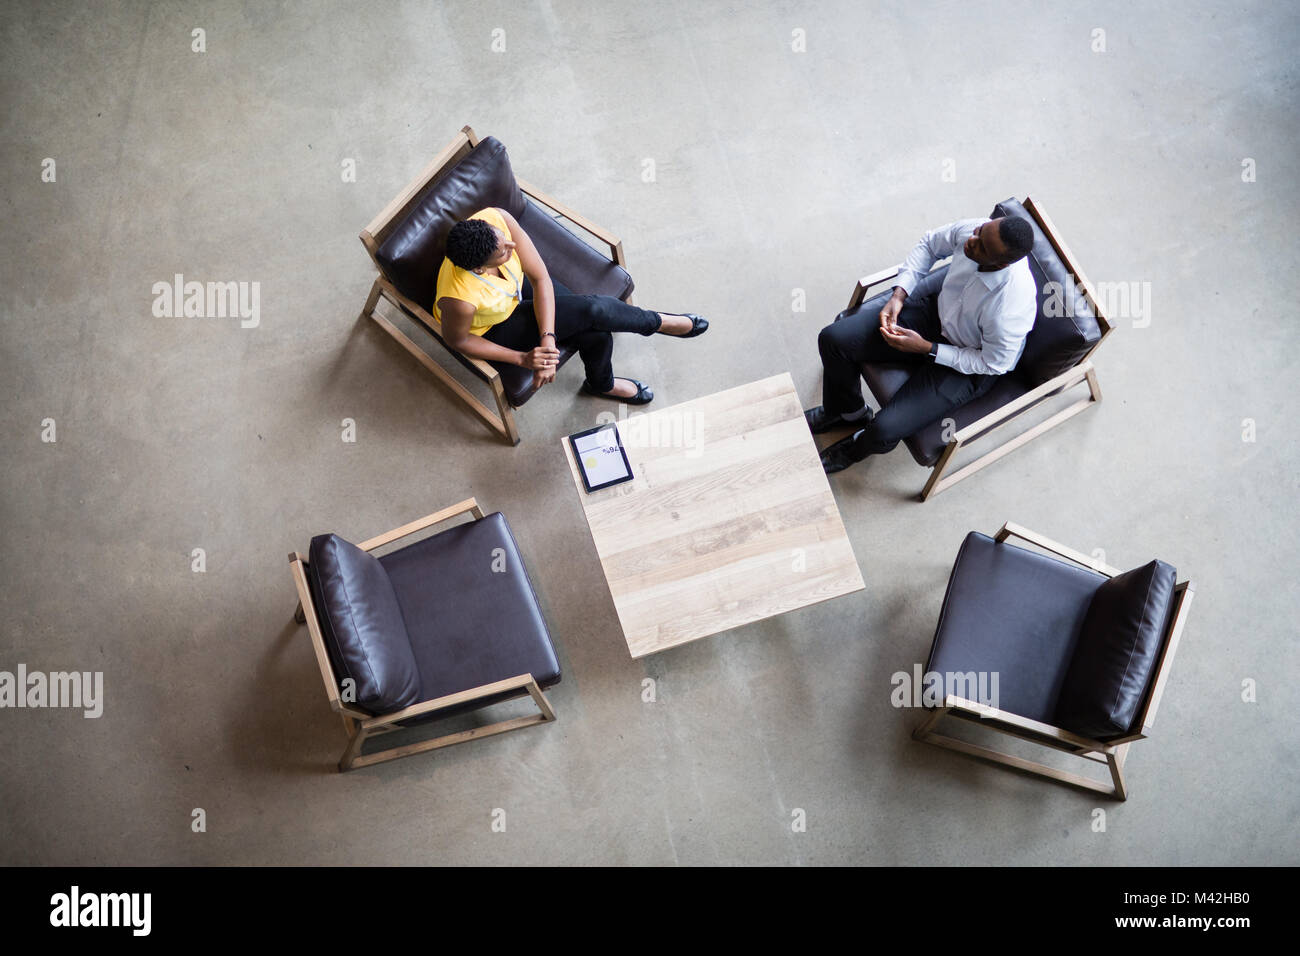 Overhead shot of a business meeting - Stock Image